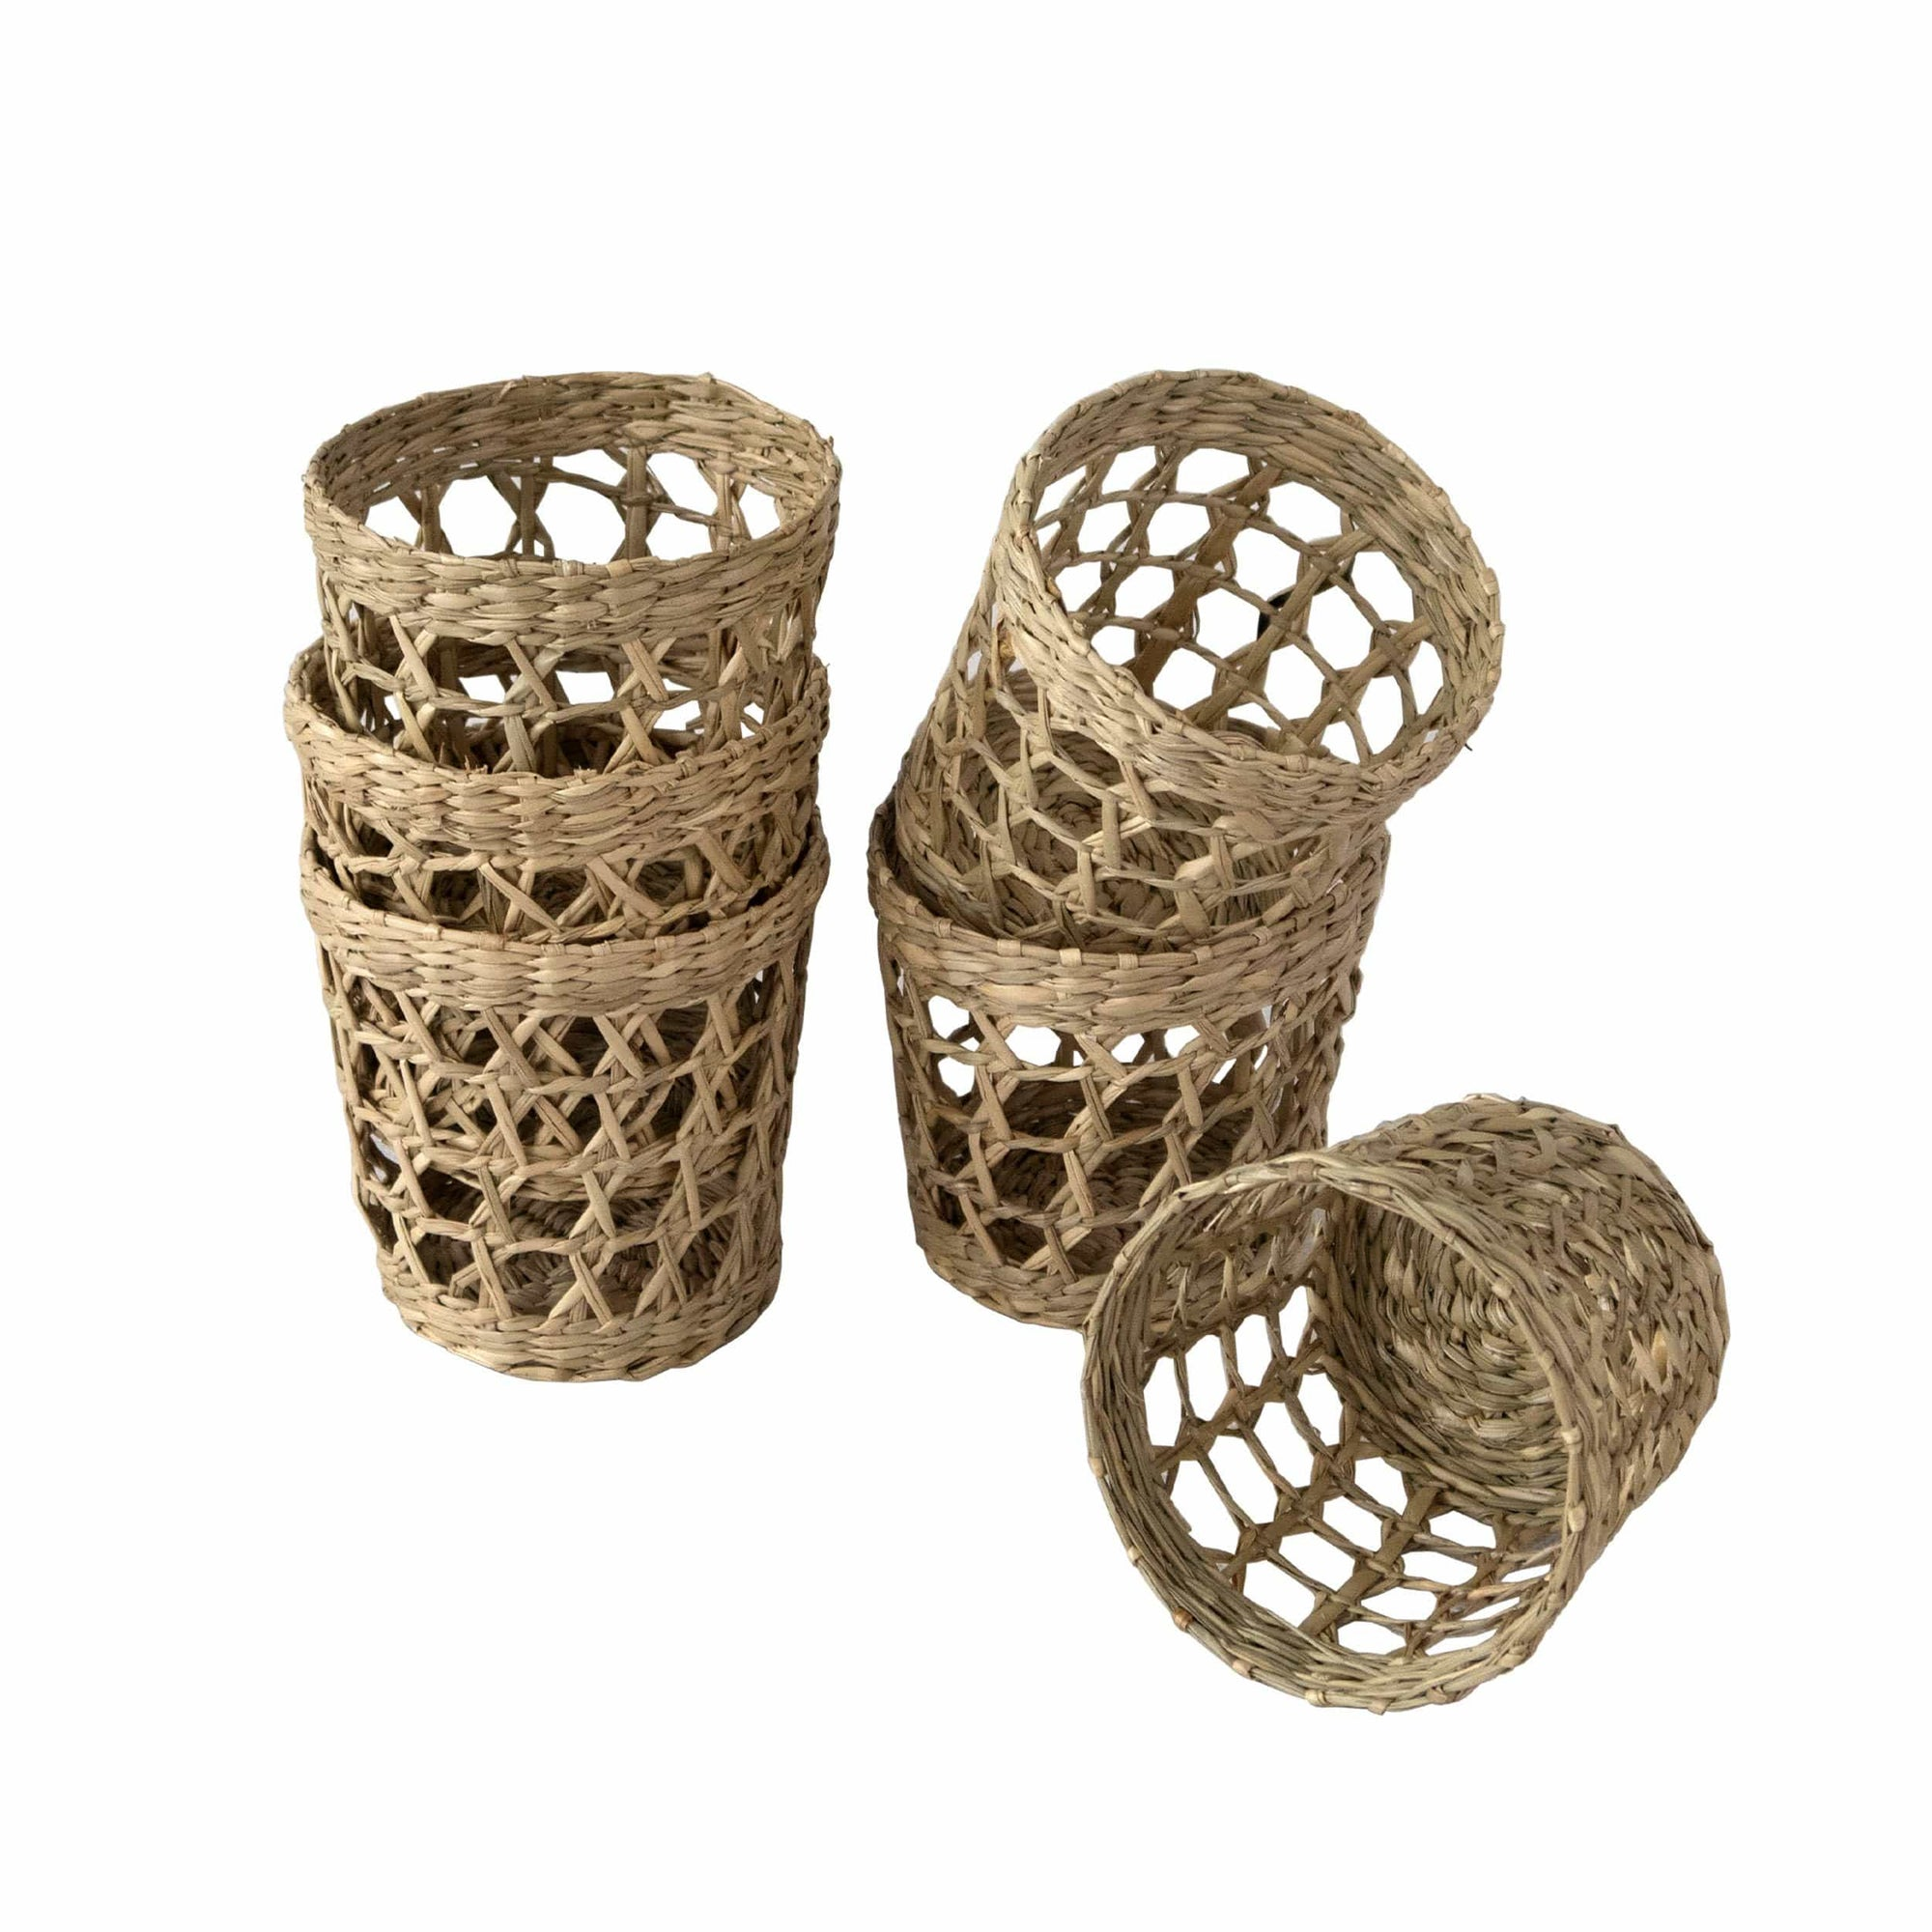 "Made Terra D3.5""xH3.3"" Set of 6 Pack Wicker Woven Cup Holders Heat Resistant Hand Woven Drink Glass Cup Holder Chic Rustic Countryside Dining Table Kitchen Decor"